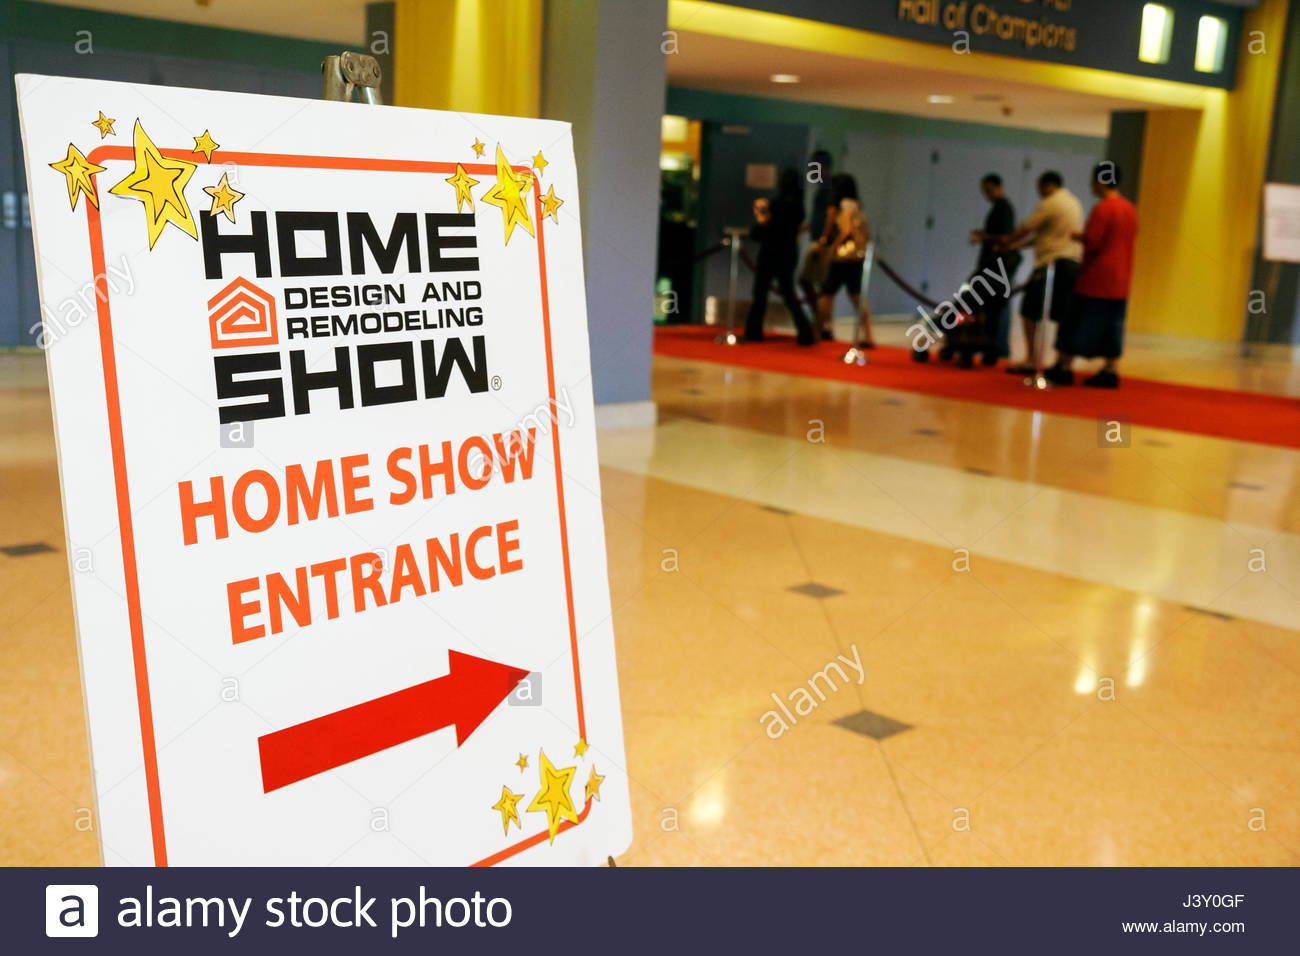 Miami Beach Miami Florida Beach Convention Center Spring Home Design And Remodeling  Show Exhibitor Shopping Decor Sign Arrow Dir